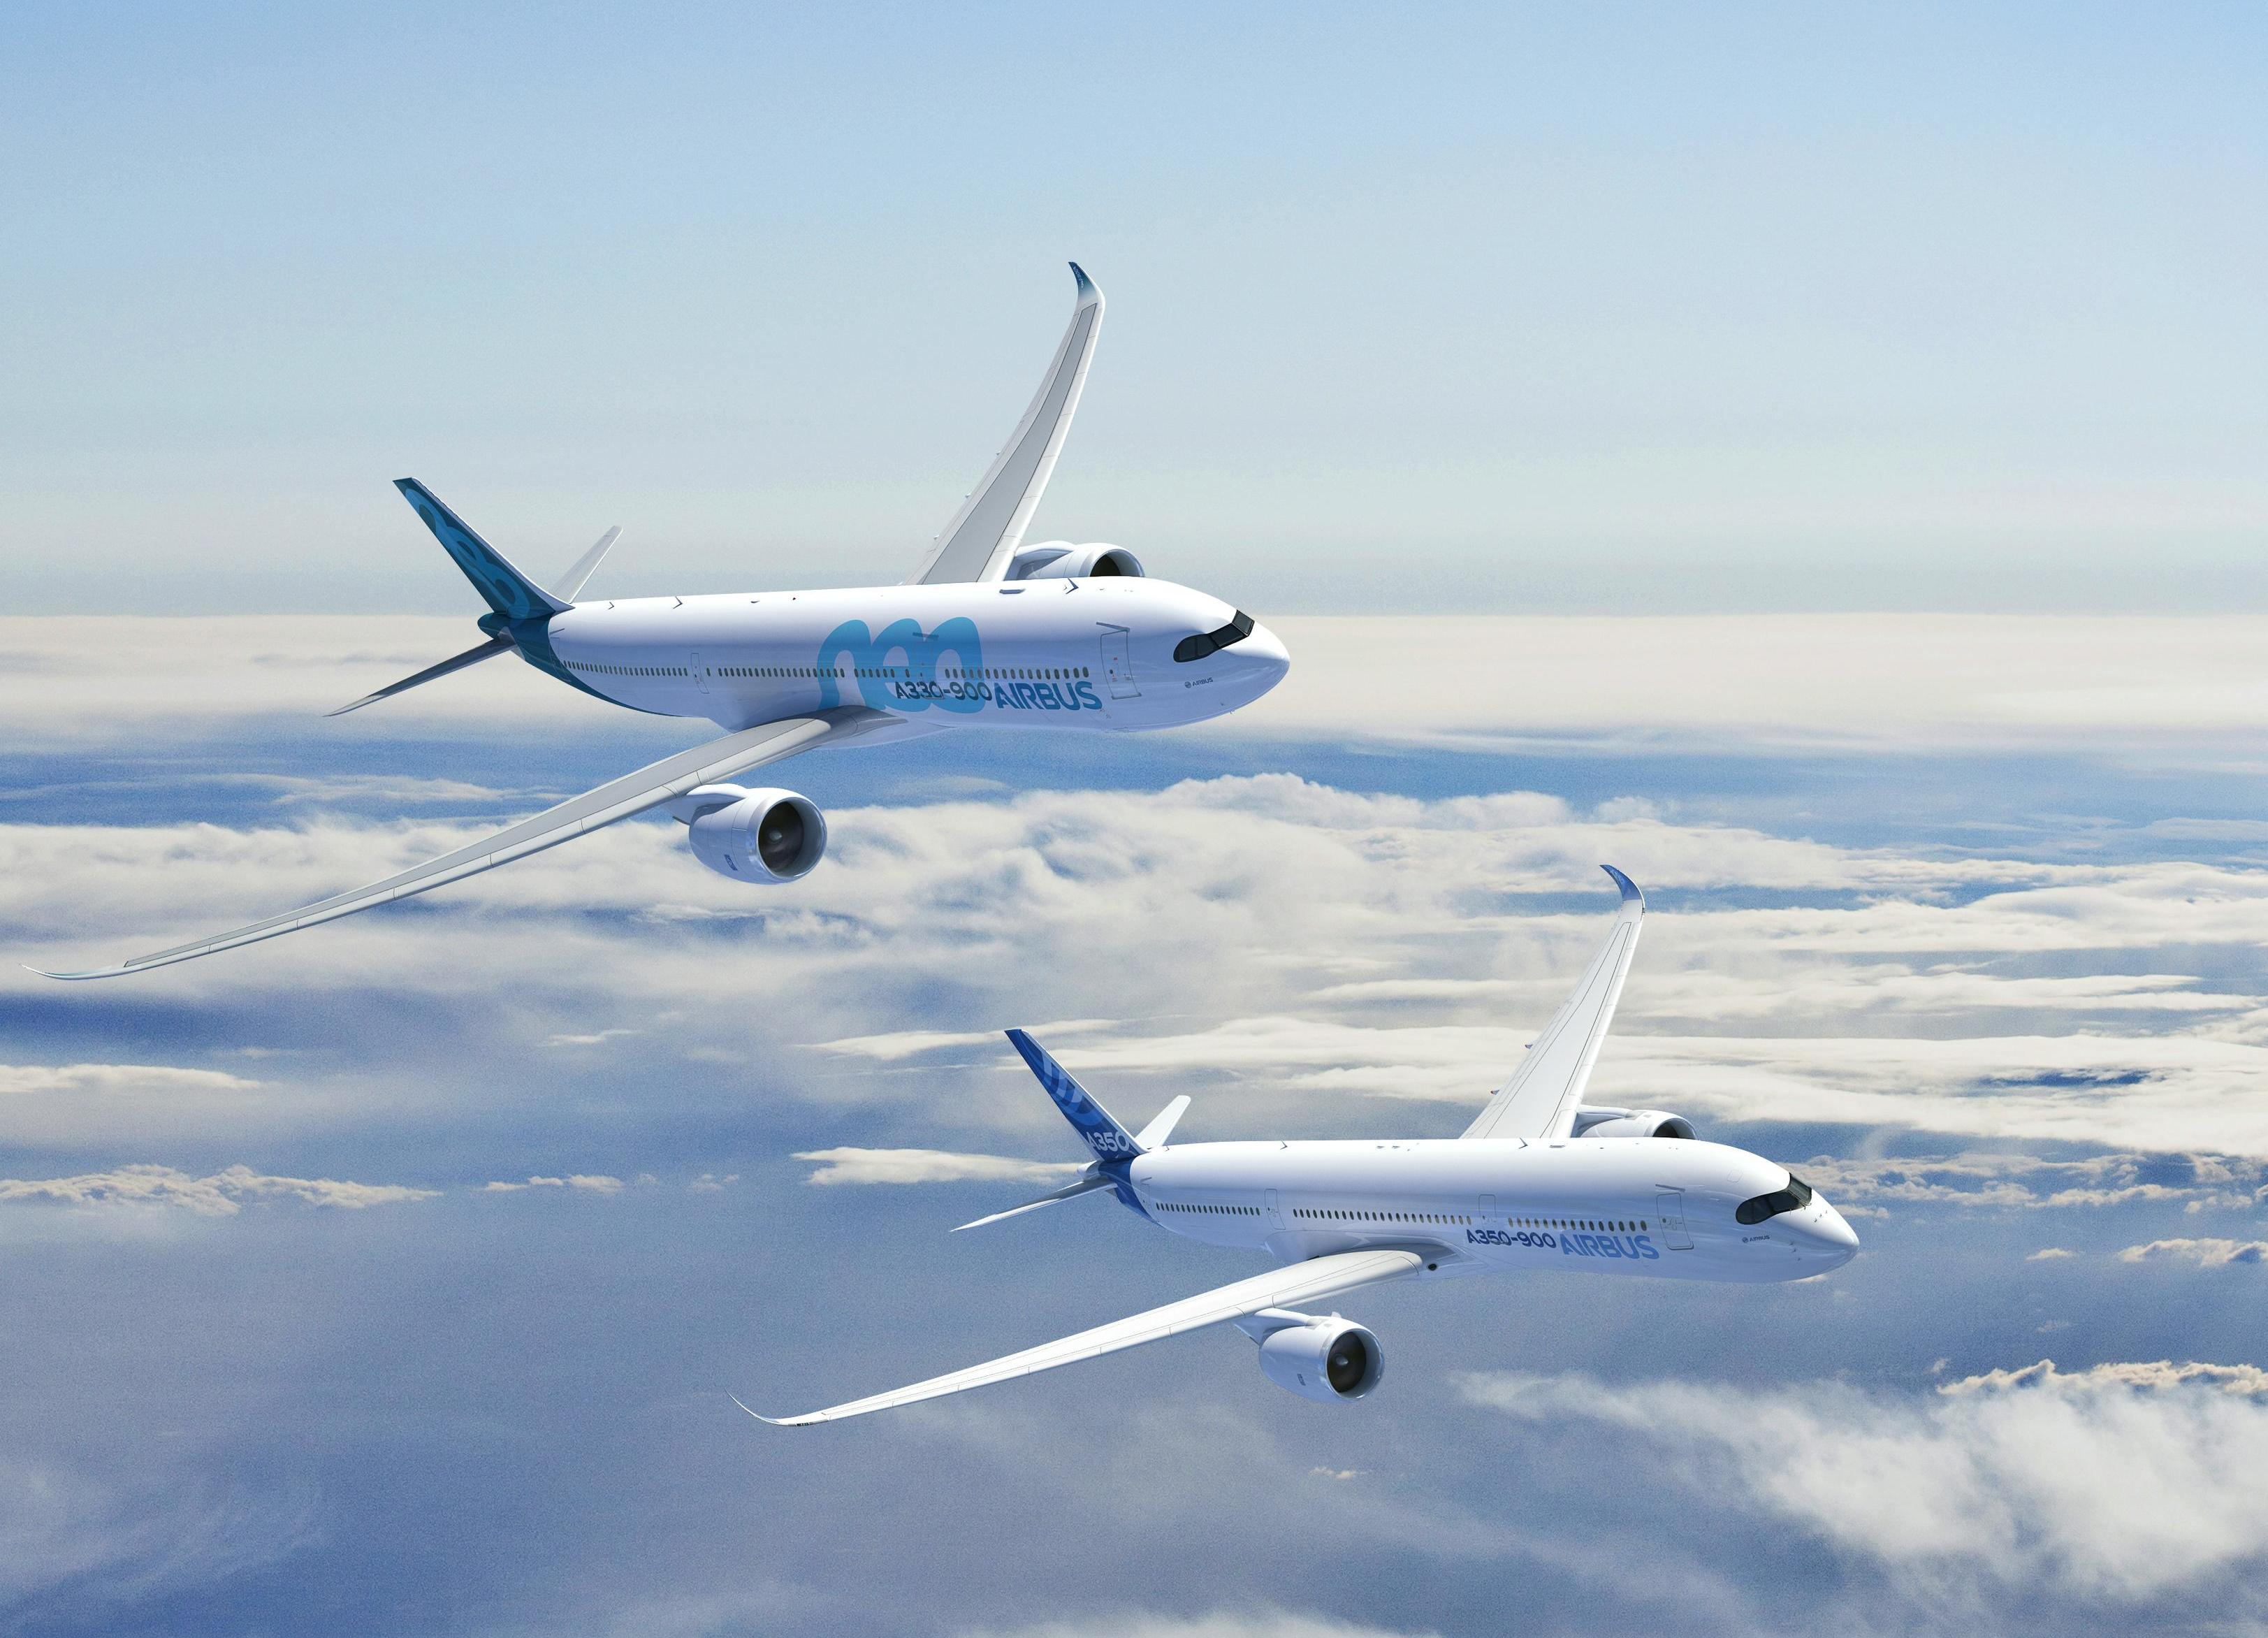 A350-900 with A330-900neo